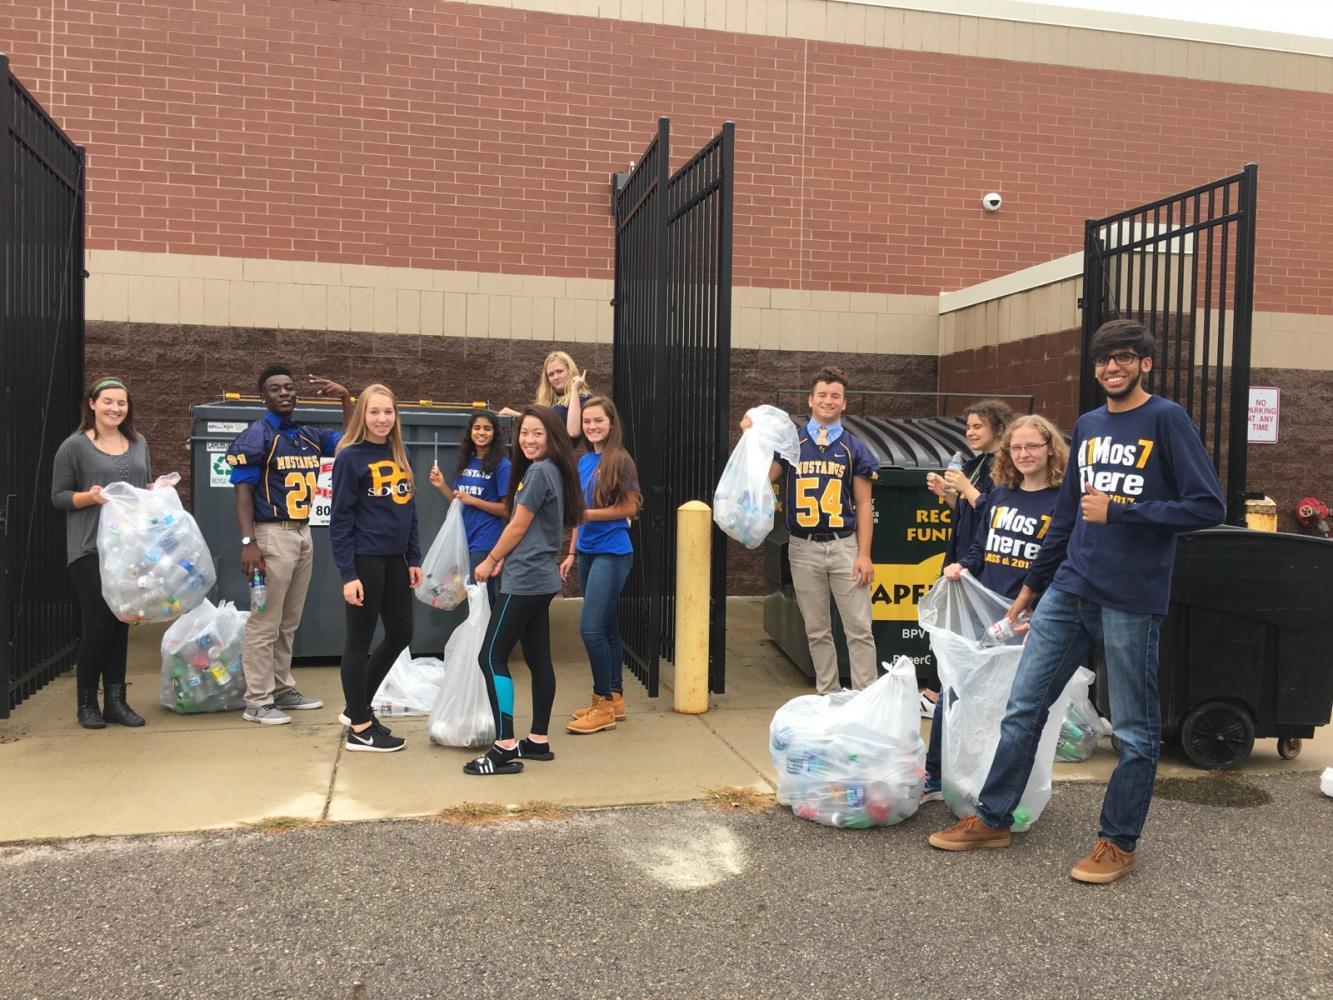 Club members pose for the camera as they throw out the school's recyclables.